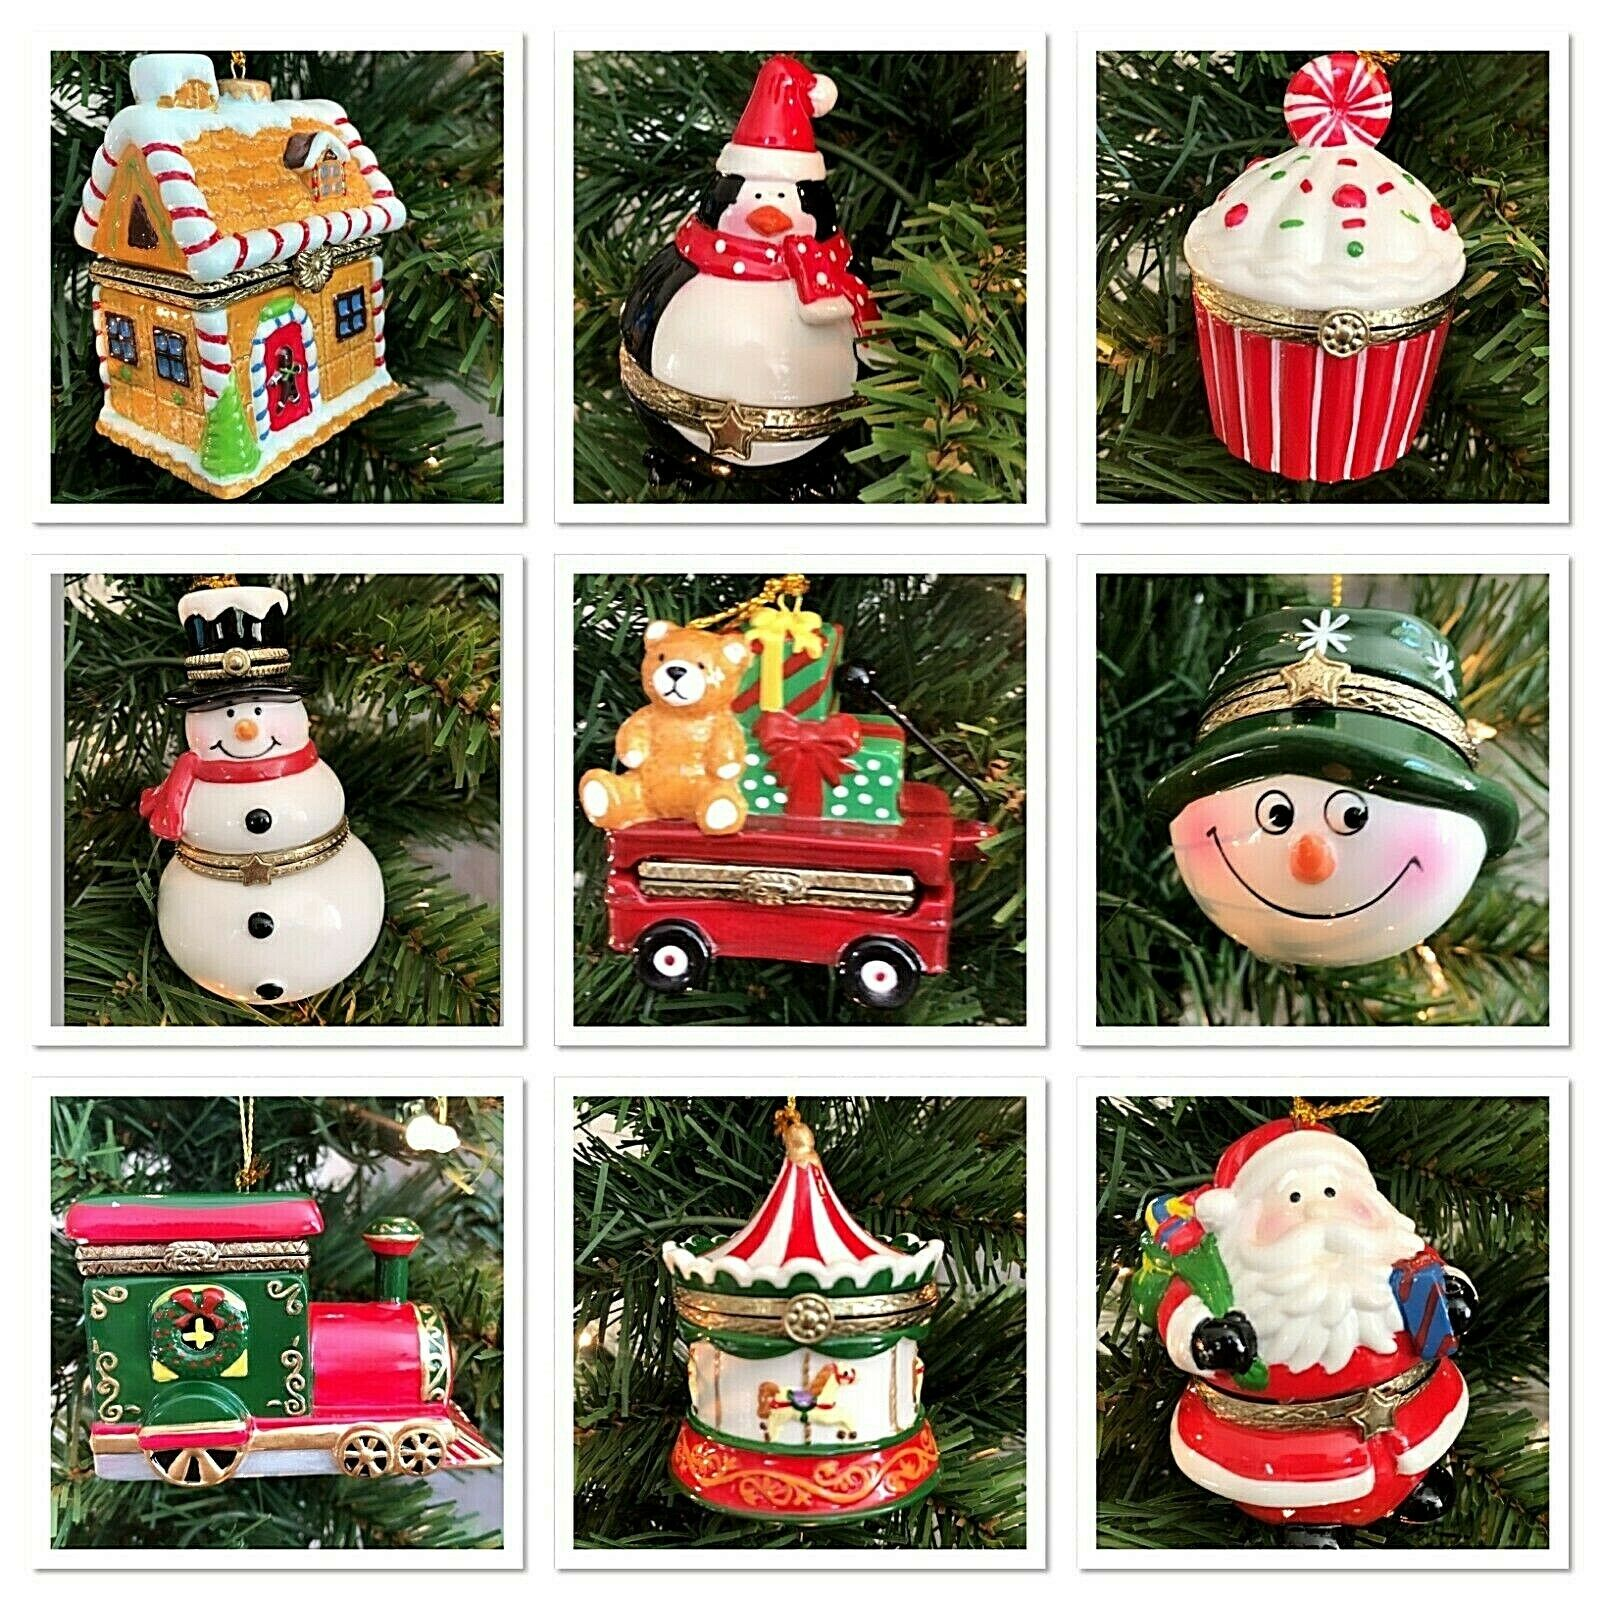 Hinged Trinket Box Ornament Porcelain Christmas Gift Hand Painted Many Designs Holiday & Seasonal Décor